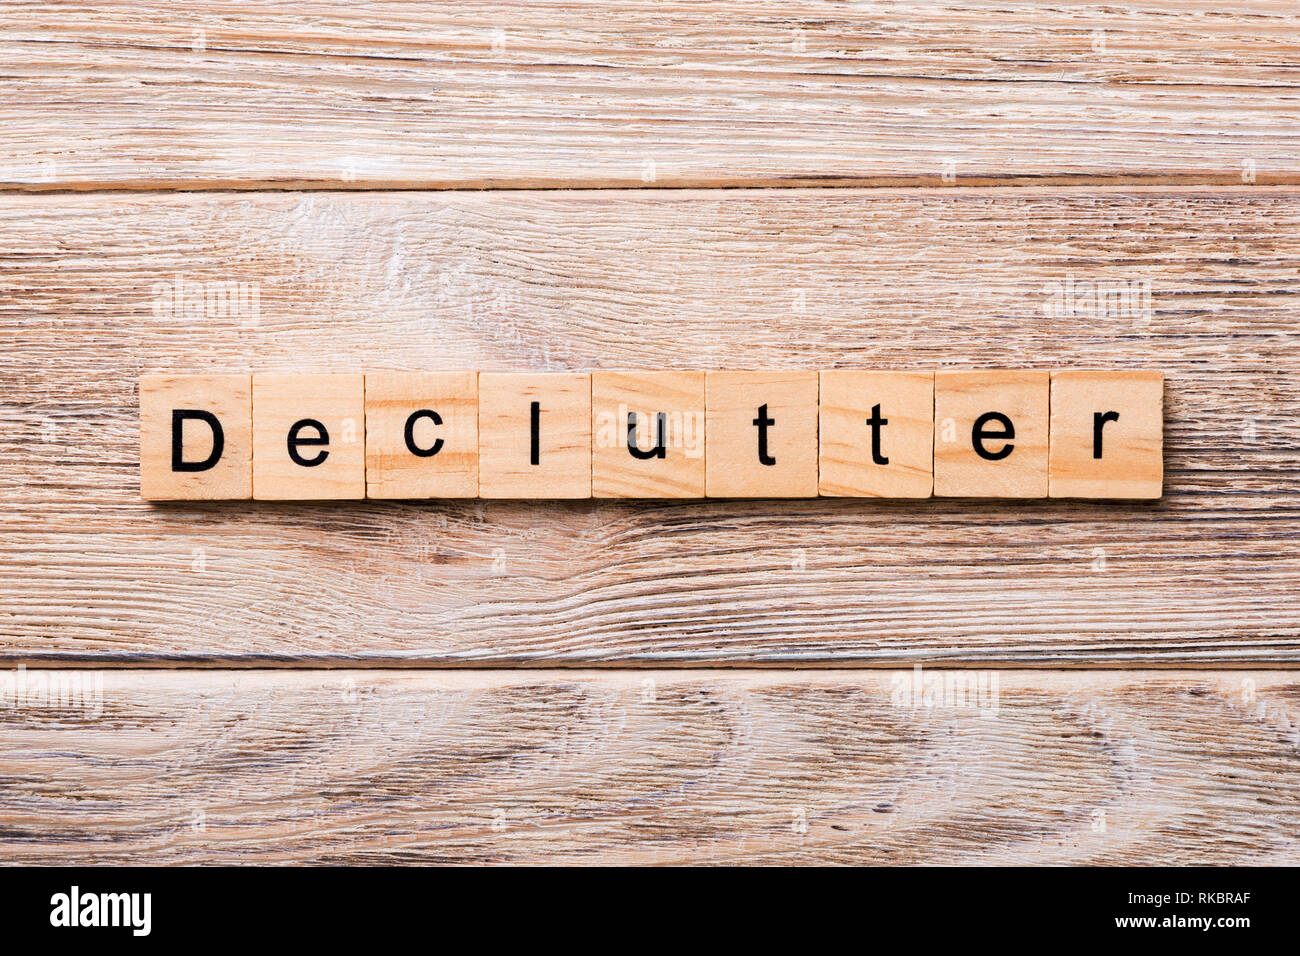 Declutter word written on wood block. Declutter text on wooden table for your desing, concept. - Stock Image